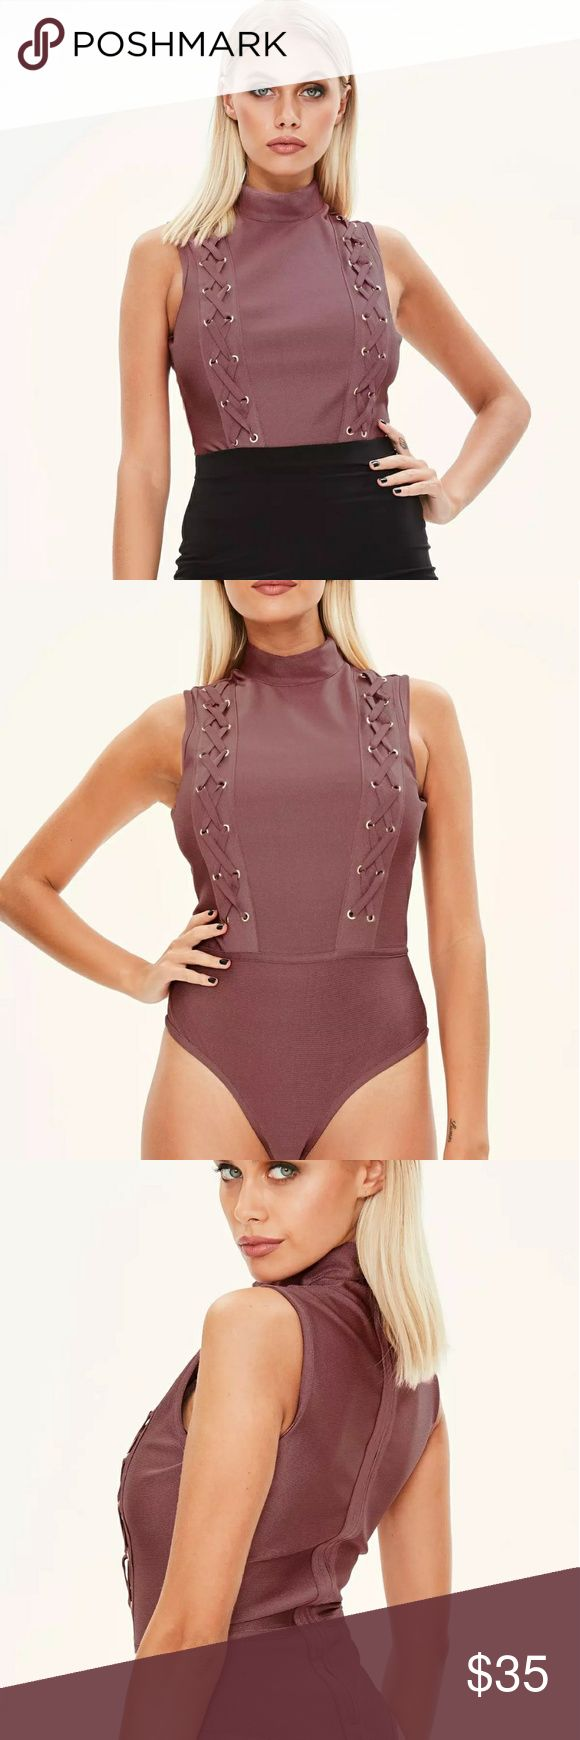 Missguided bandage bodysuit NWOT missguided US size 4 Missguided Tops